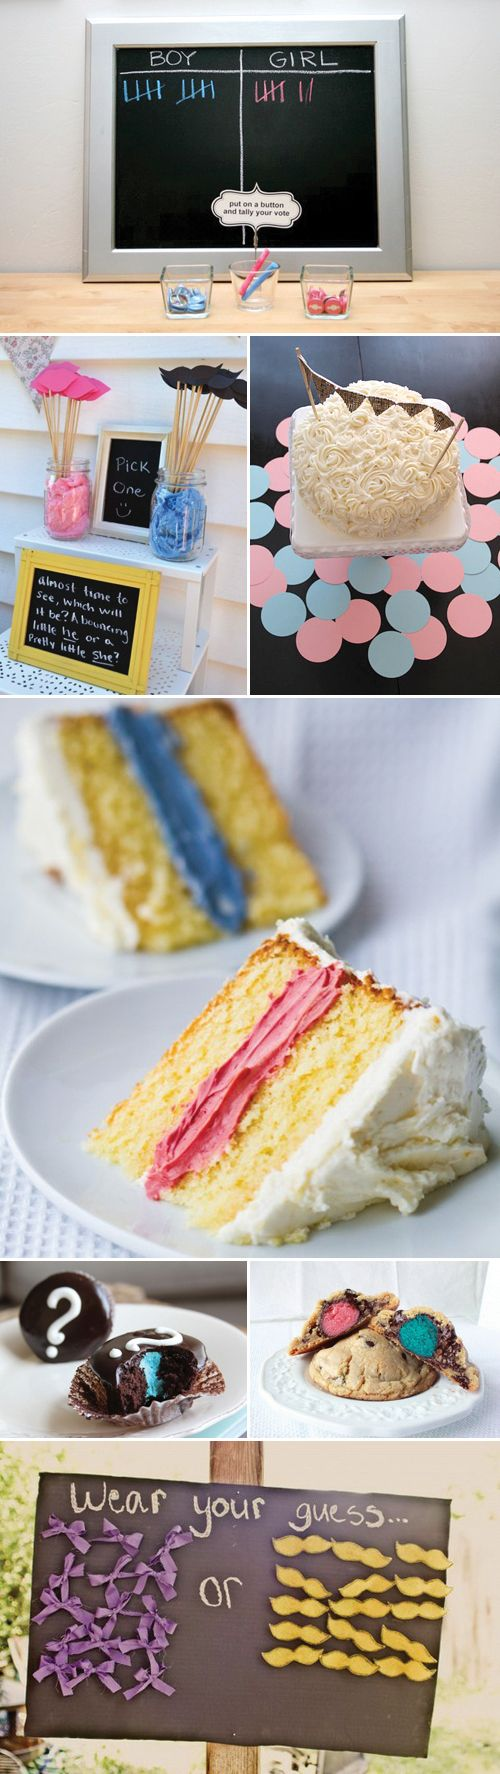 boy or girl? partyBaby Gender, Reveal Baby, Gender Reveal Parties, Baby Shower Ideas, Cute Ideas, Parties Ideas, Gender Parties, Party Ideas, Baby Shower